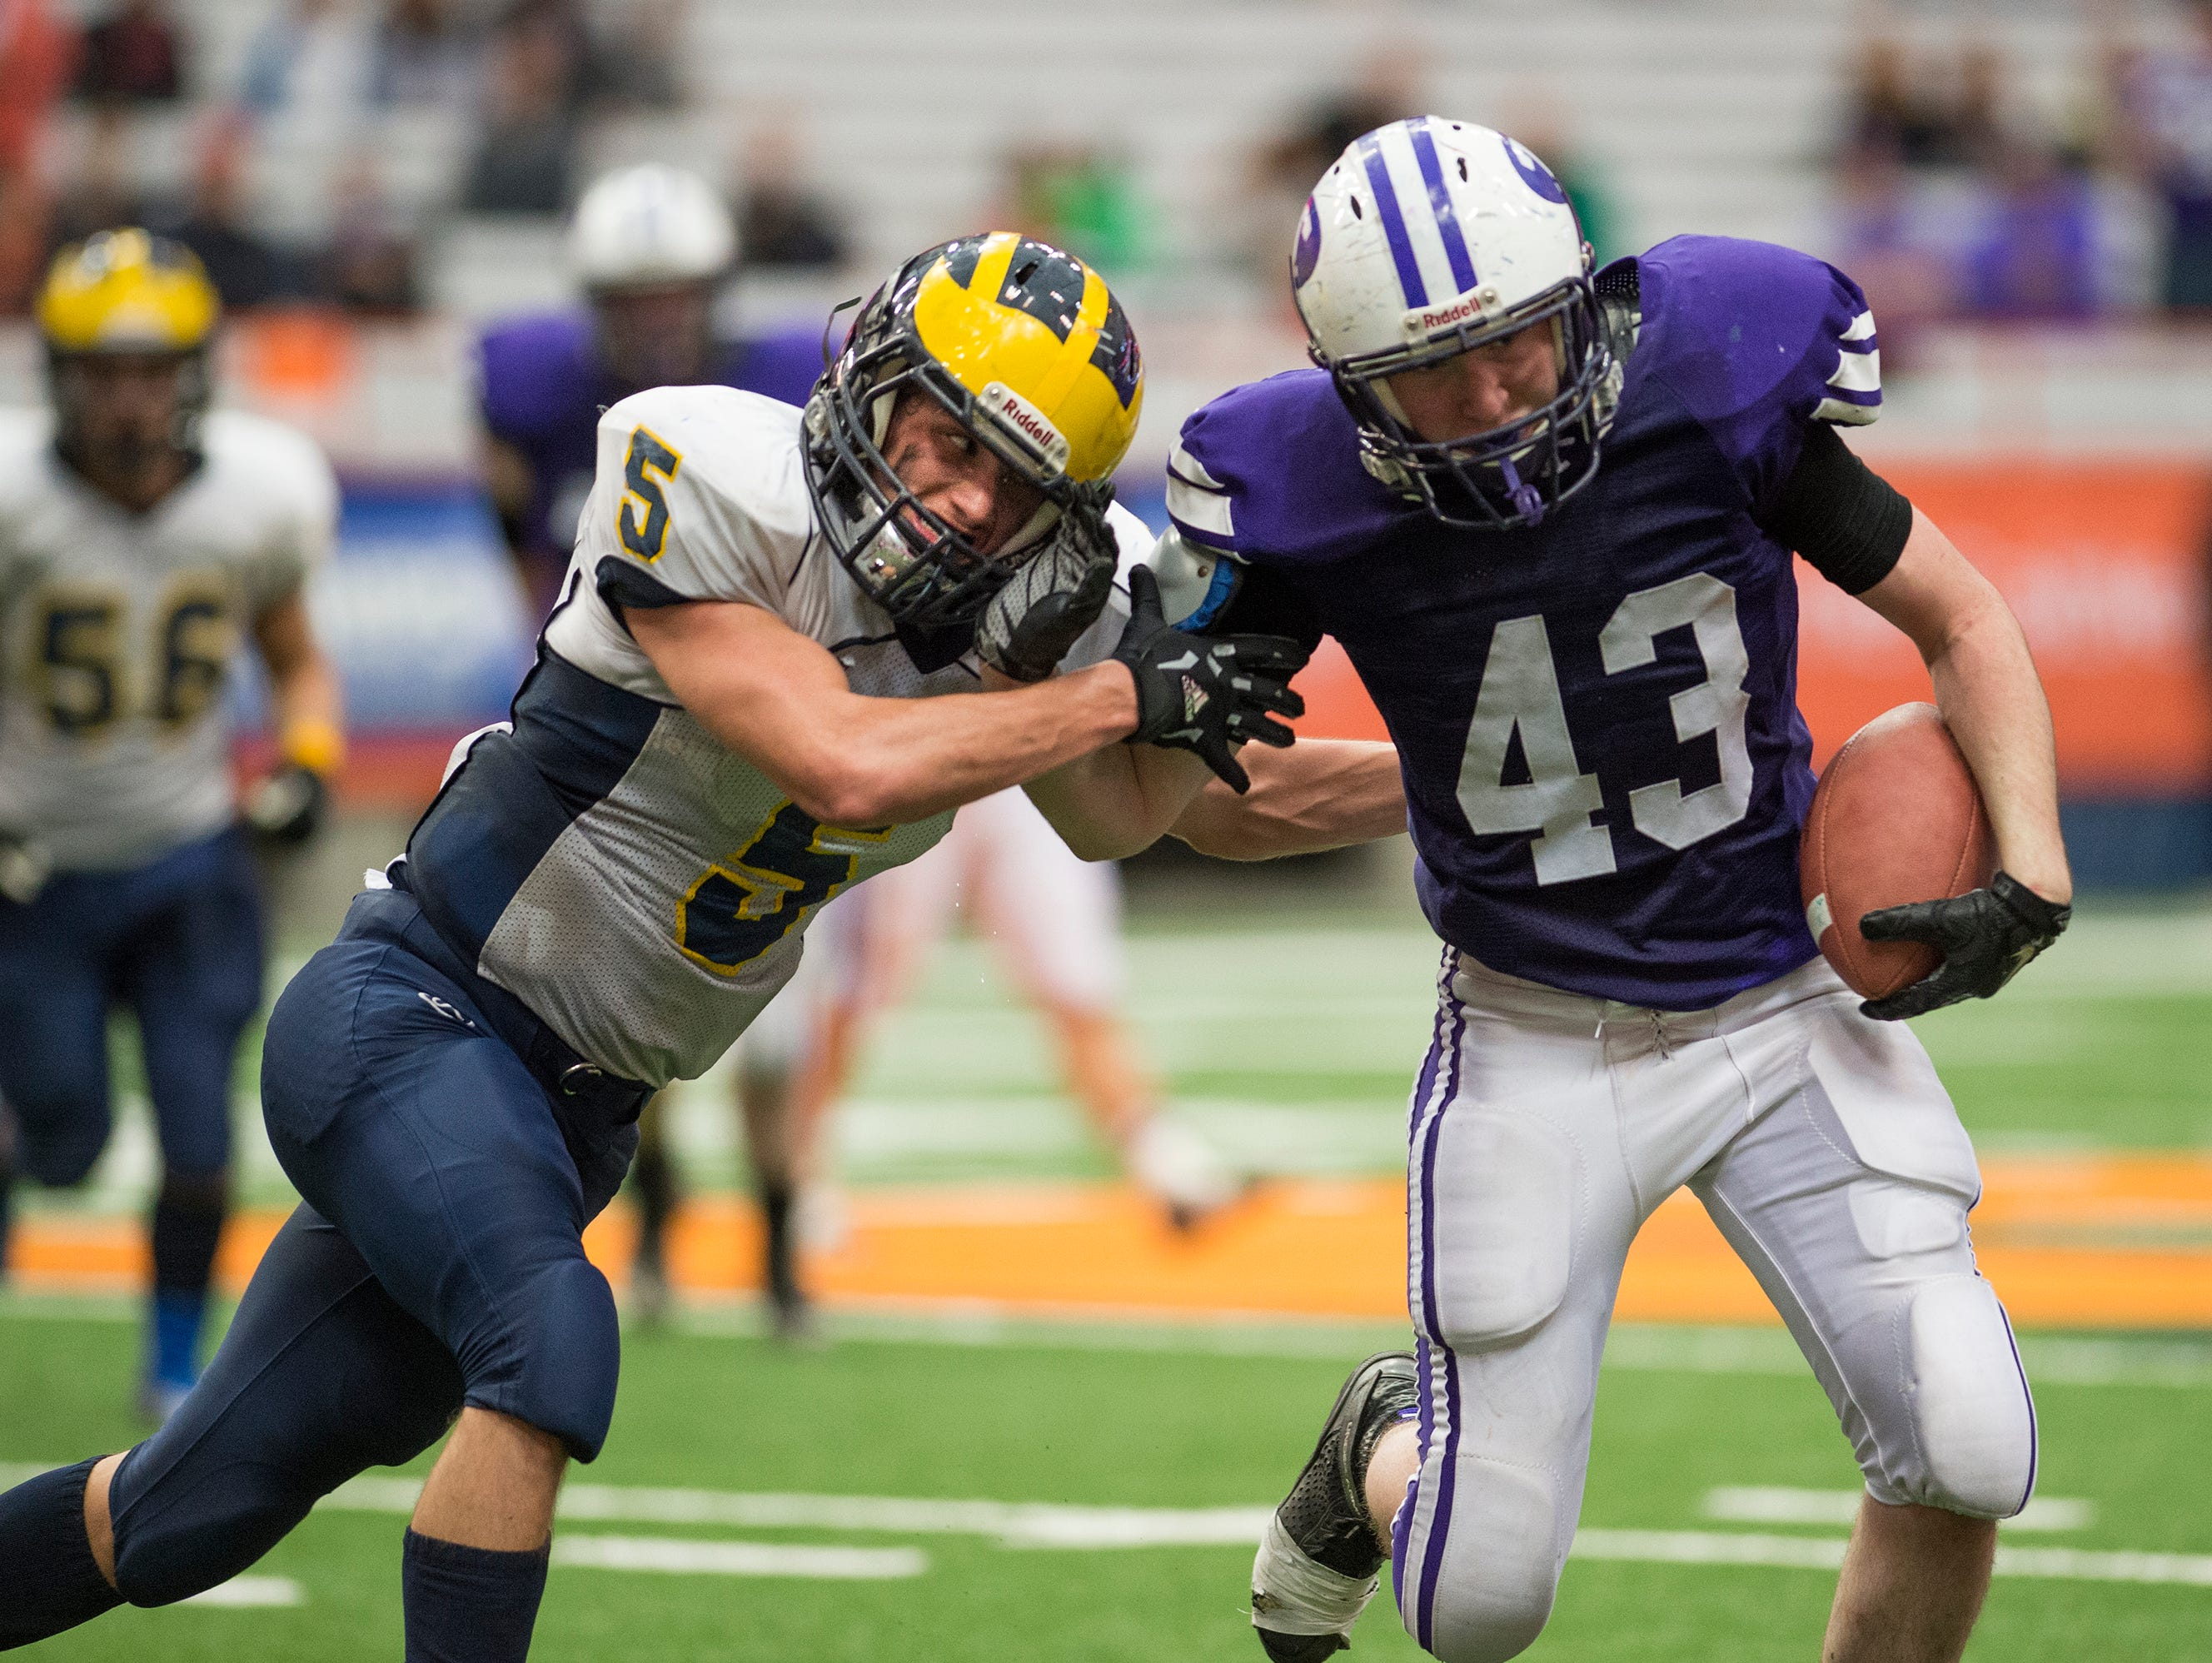 Tioga cornerback Jake Lewis tackles Ticonderoga tight end Jacob Spaulding during the fourth quarter of Tioga's 33-26 win in the 2015 Class D State Championship in Syracuse on Friday, Nov. 27, 2015.